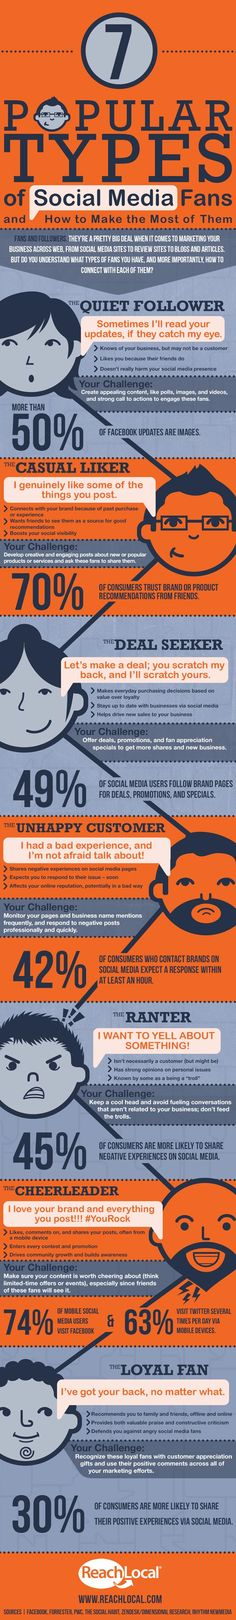 7 types of social media users and how to engage with them #infographic #socialmedia